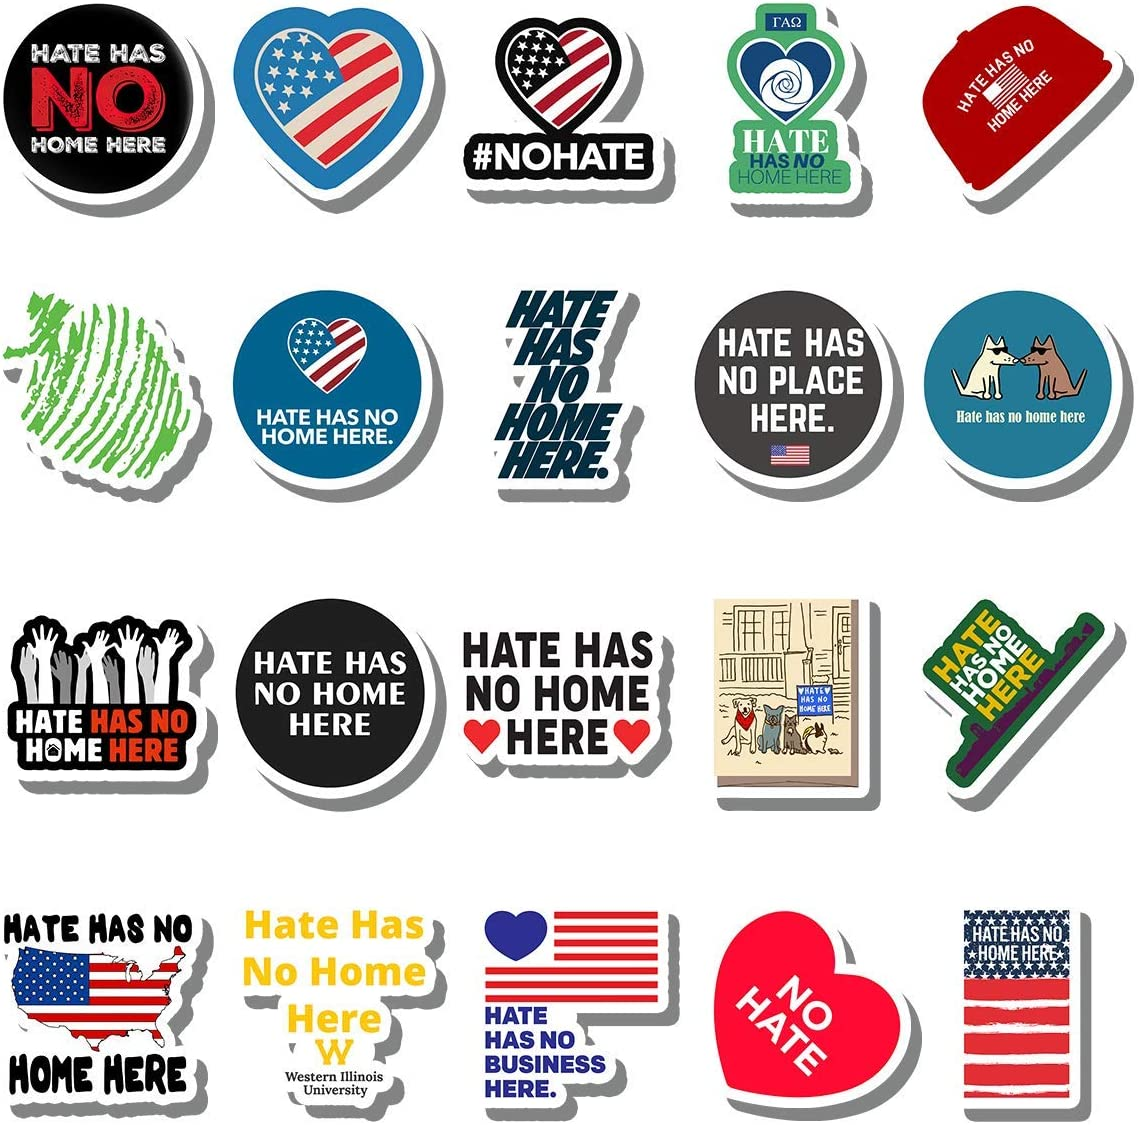 20 PCS Stickers Pack Hate Aesthetic Has Vinyl No Colorful Home Waterproof Here for Water Bottle Laptop Bumper Car Bike Luggage Guitar Skateboard